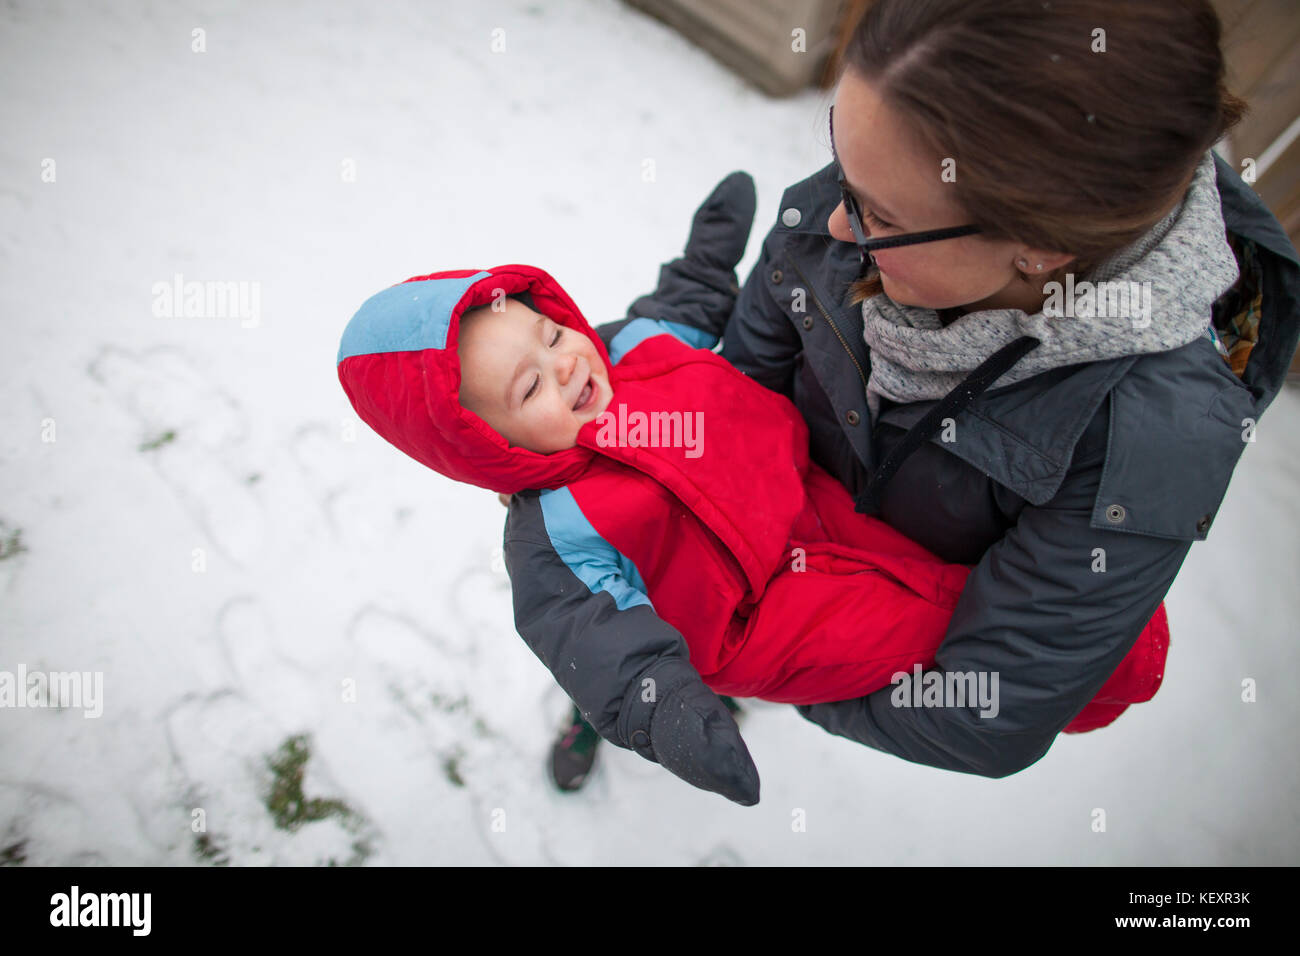 Mother holding laughing baby outdoors in winter while wearing warm clothing, Langley, British Columbia, Canada - Stock Image